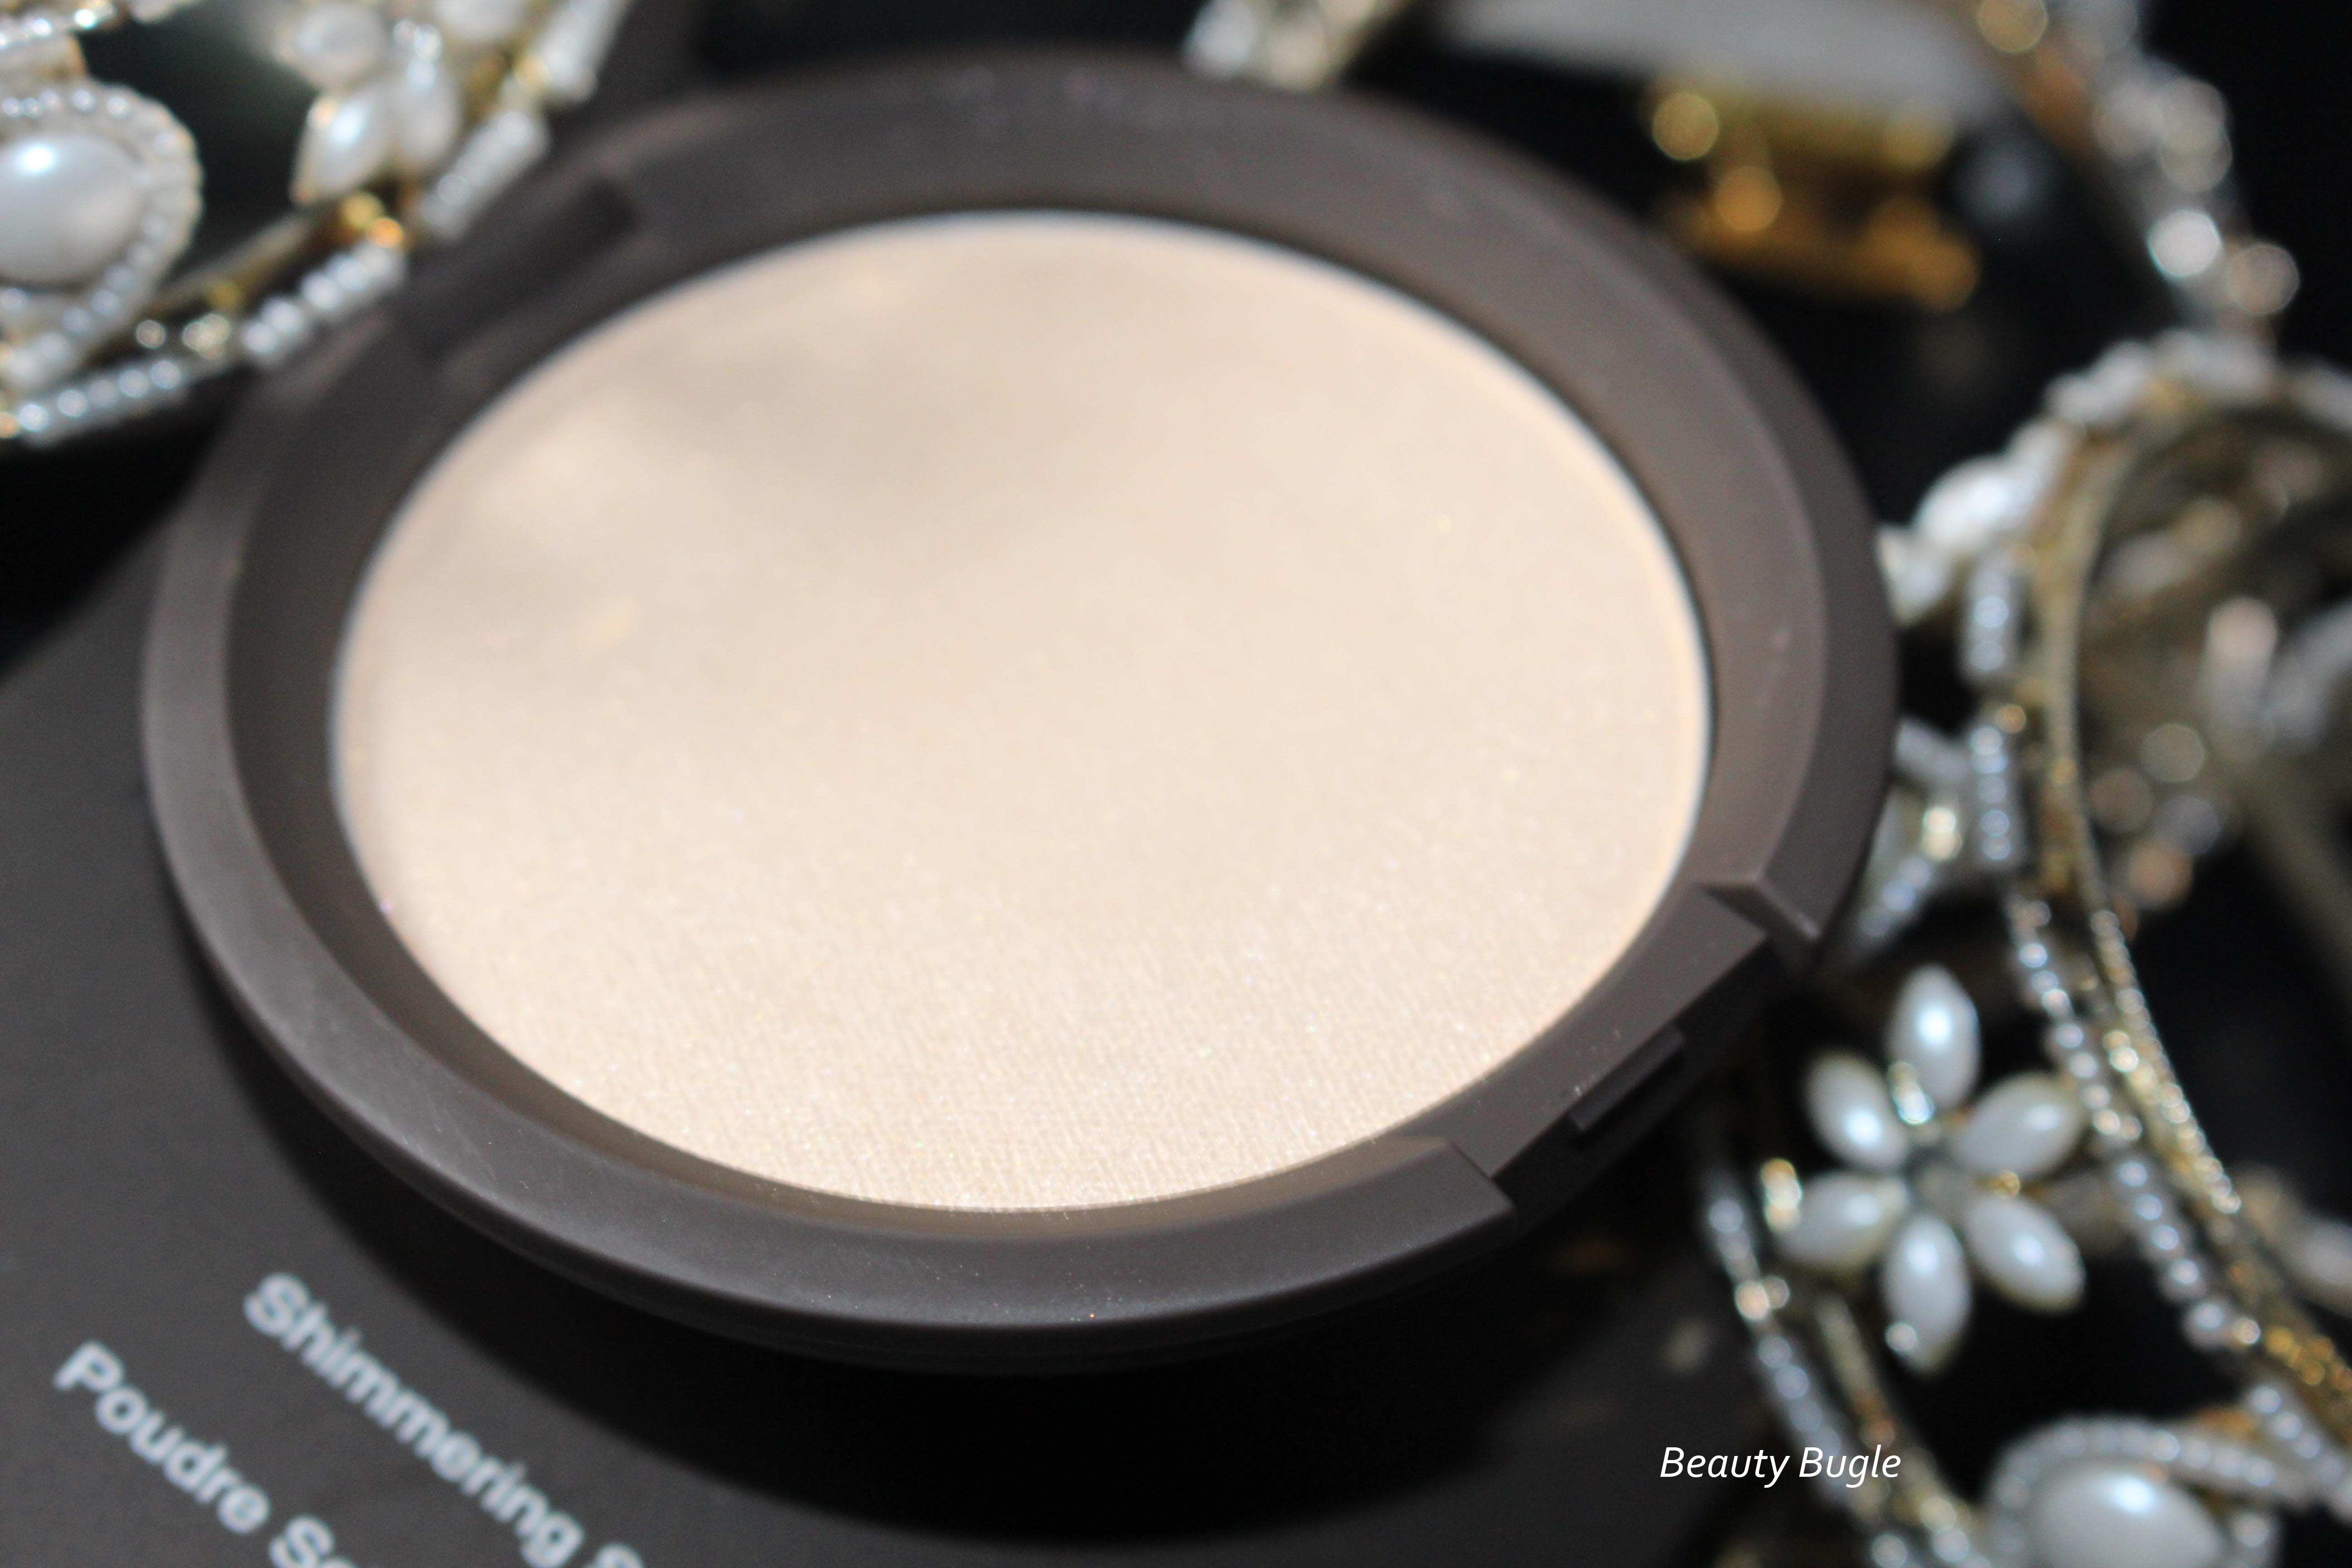 Becca's Shimmering Skin Perfector Pressed (Moonstone)